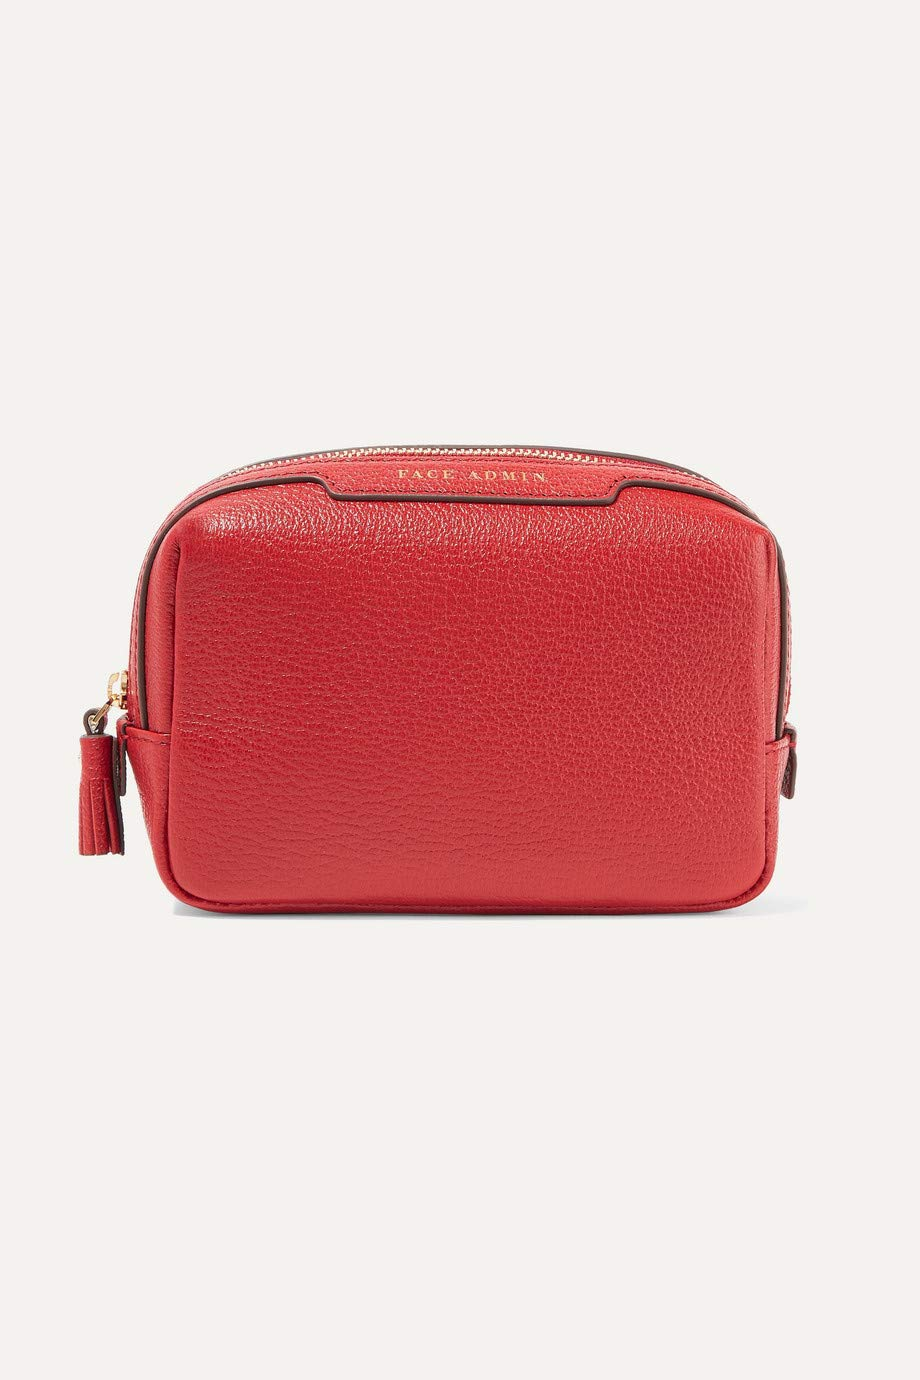 ANYA HINDMARCH Face Admin textured-leather cosmetics case, Red Carpa, Limited Edition